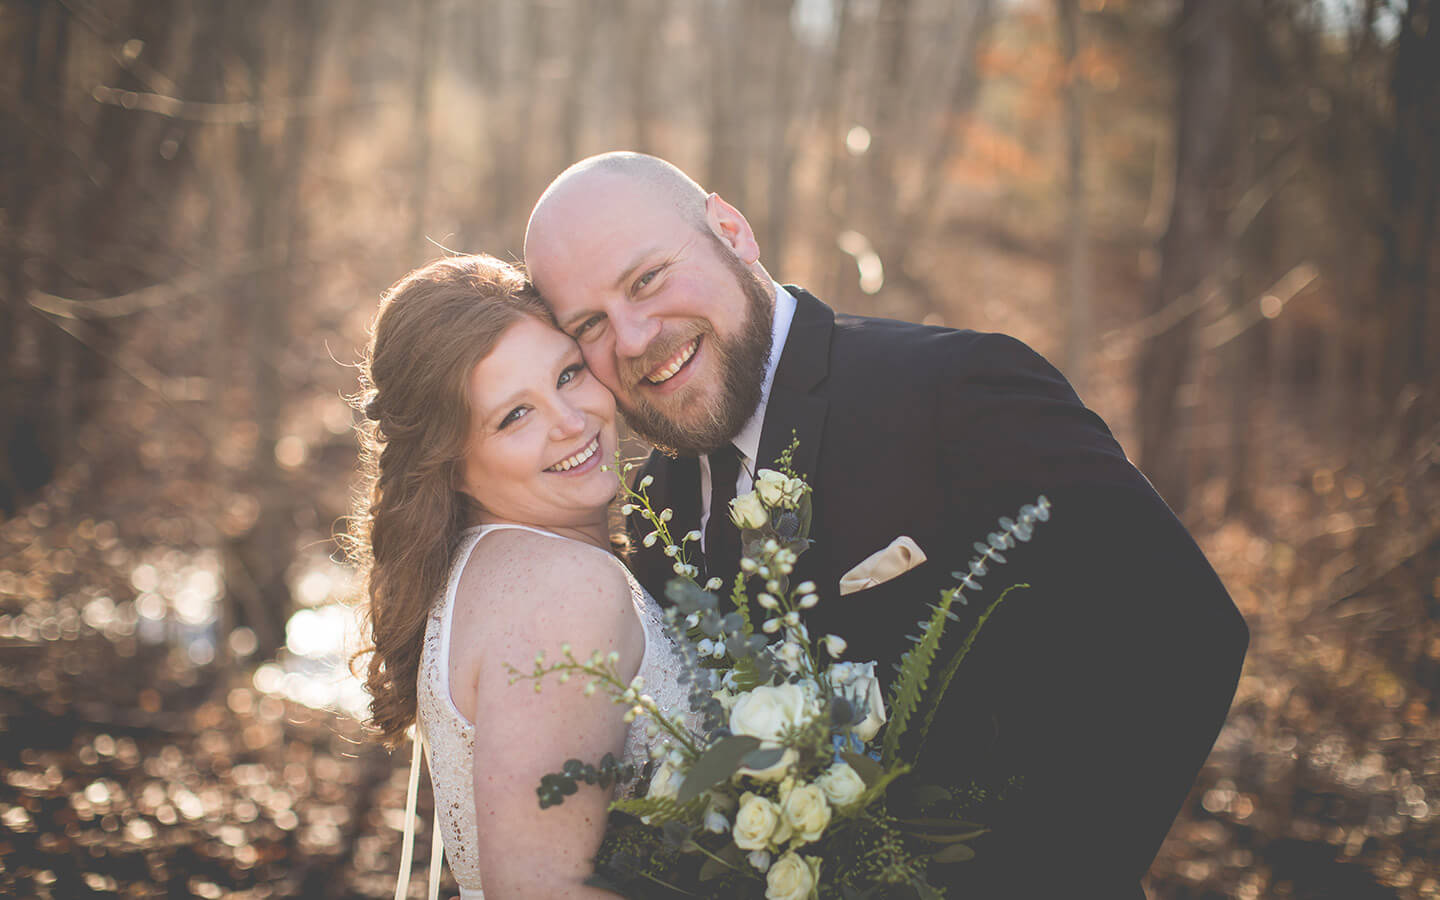 Destination wedding in Michigan, Smiling bride and groom on a sunny fall day